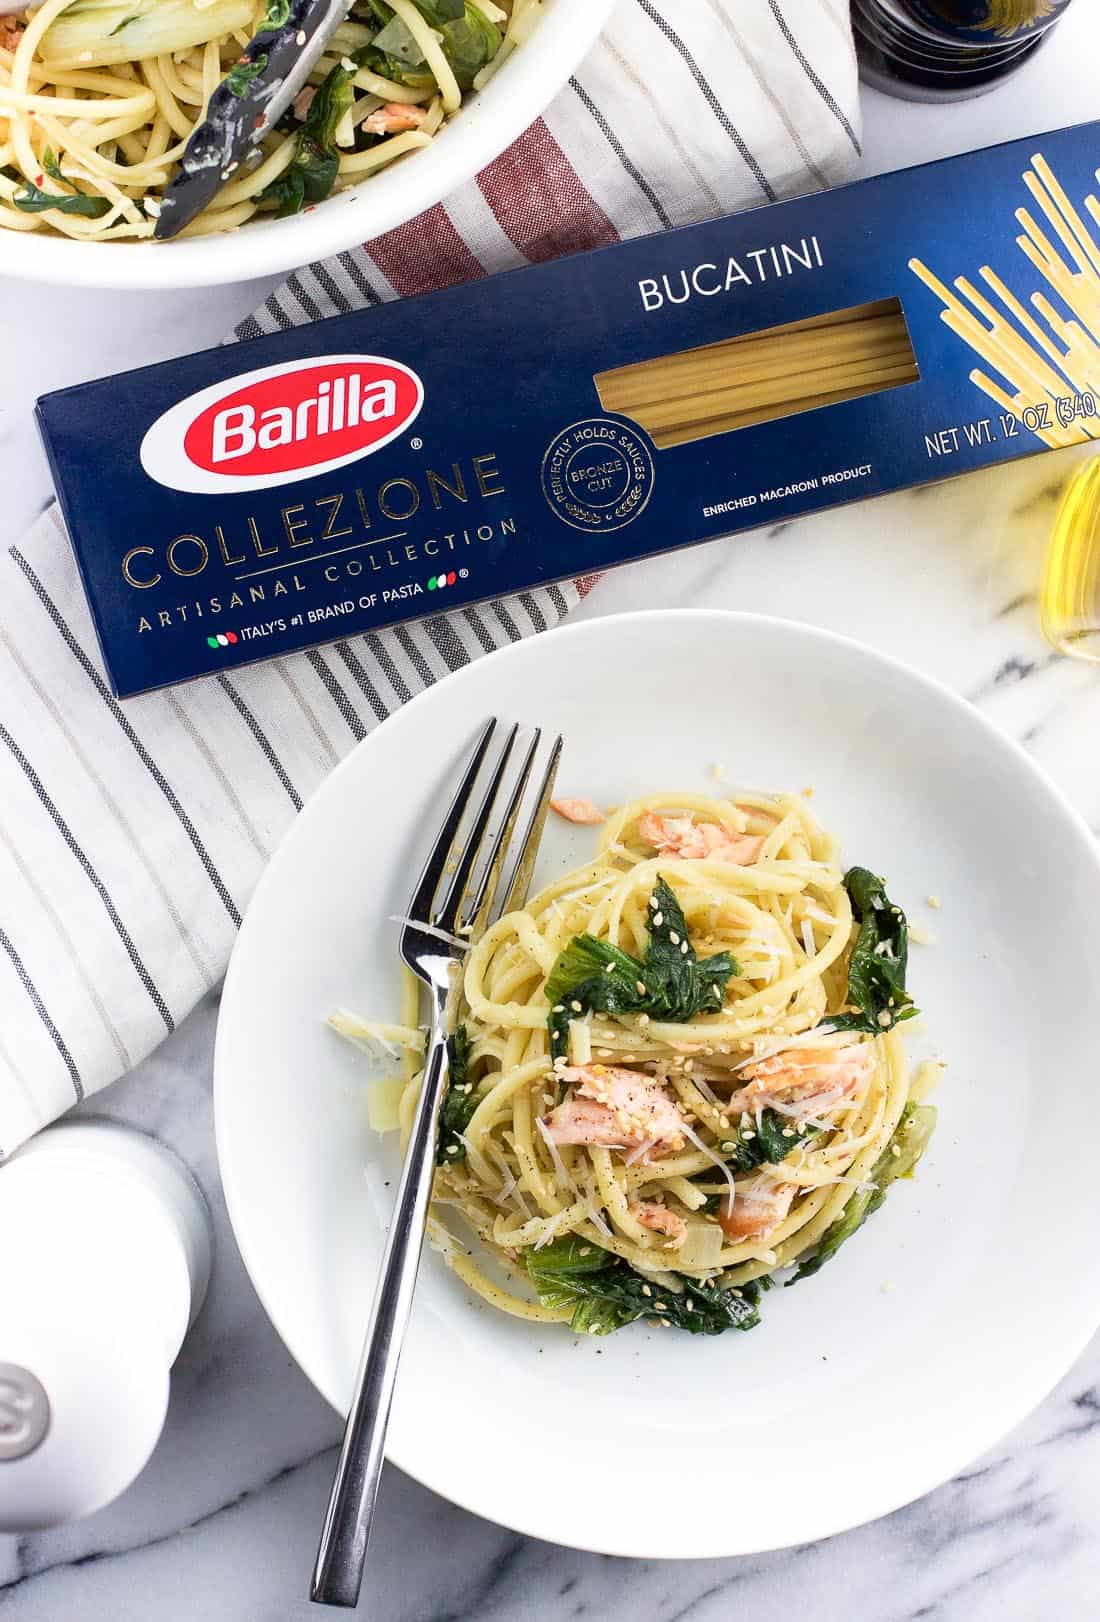 A plate of salmon pasta next to a package of Barilla Bucatini